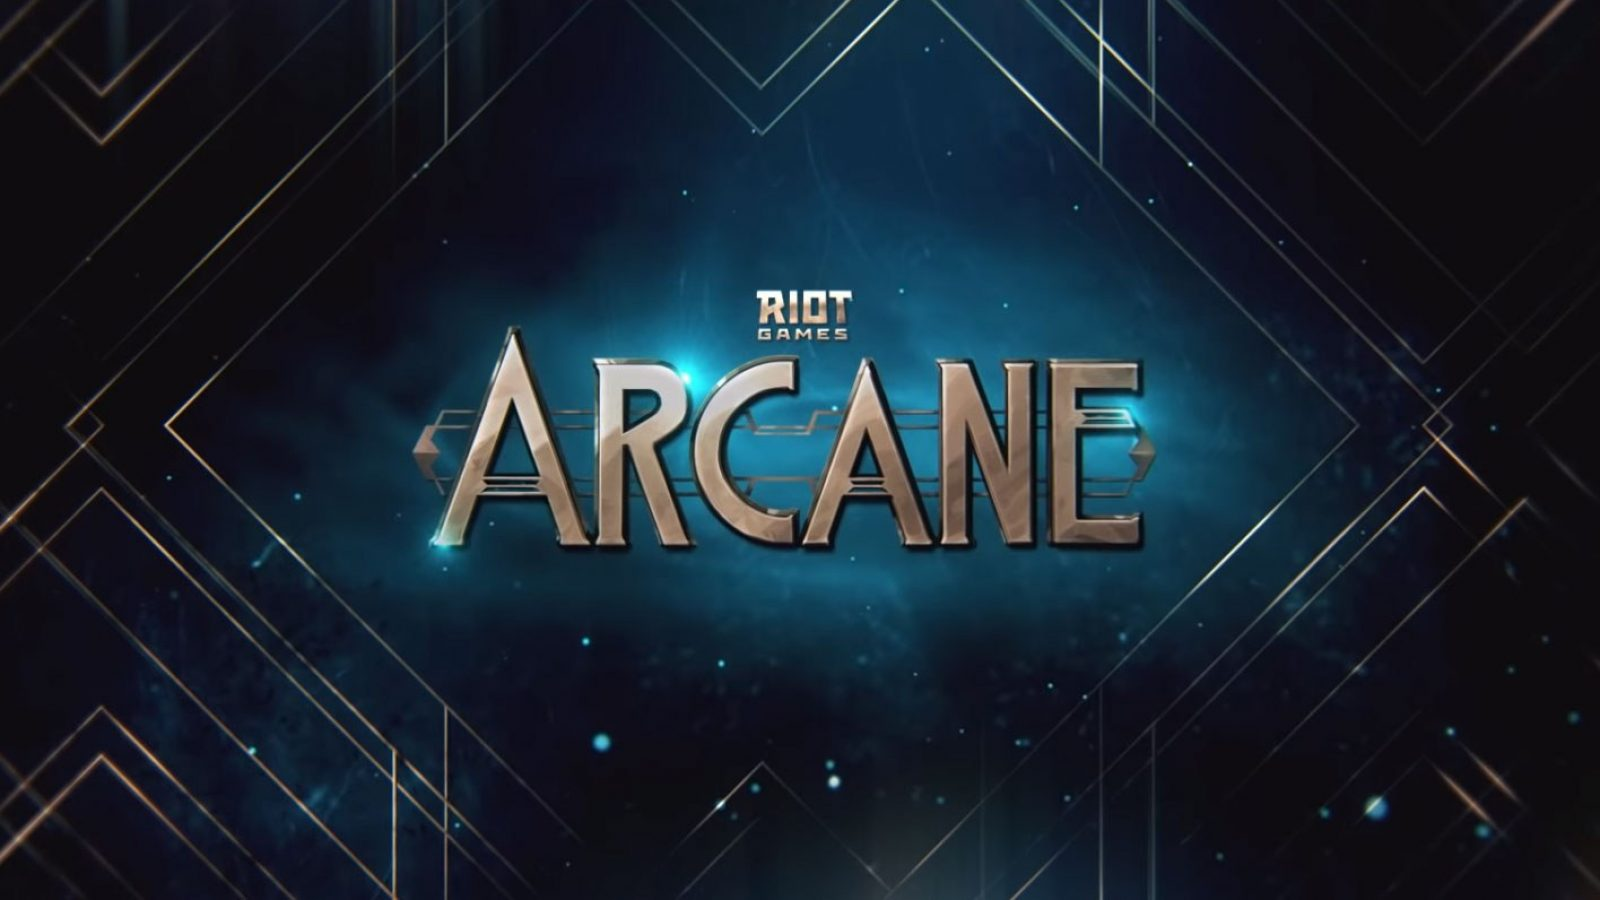 Arcane (TV Series)